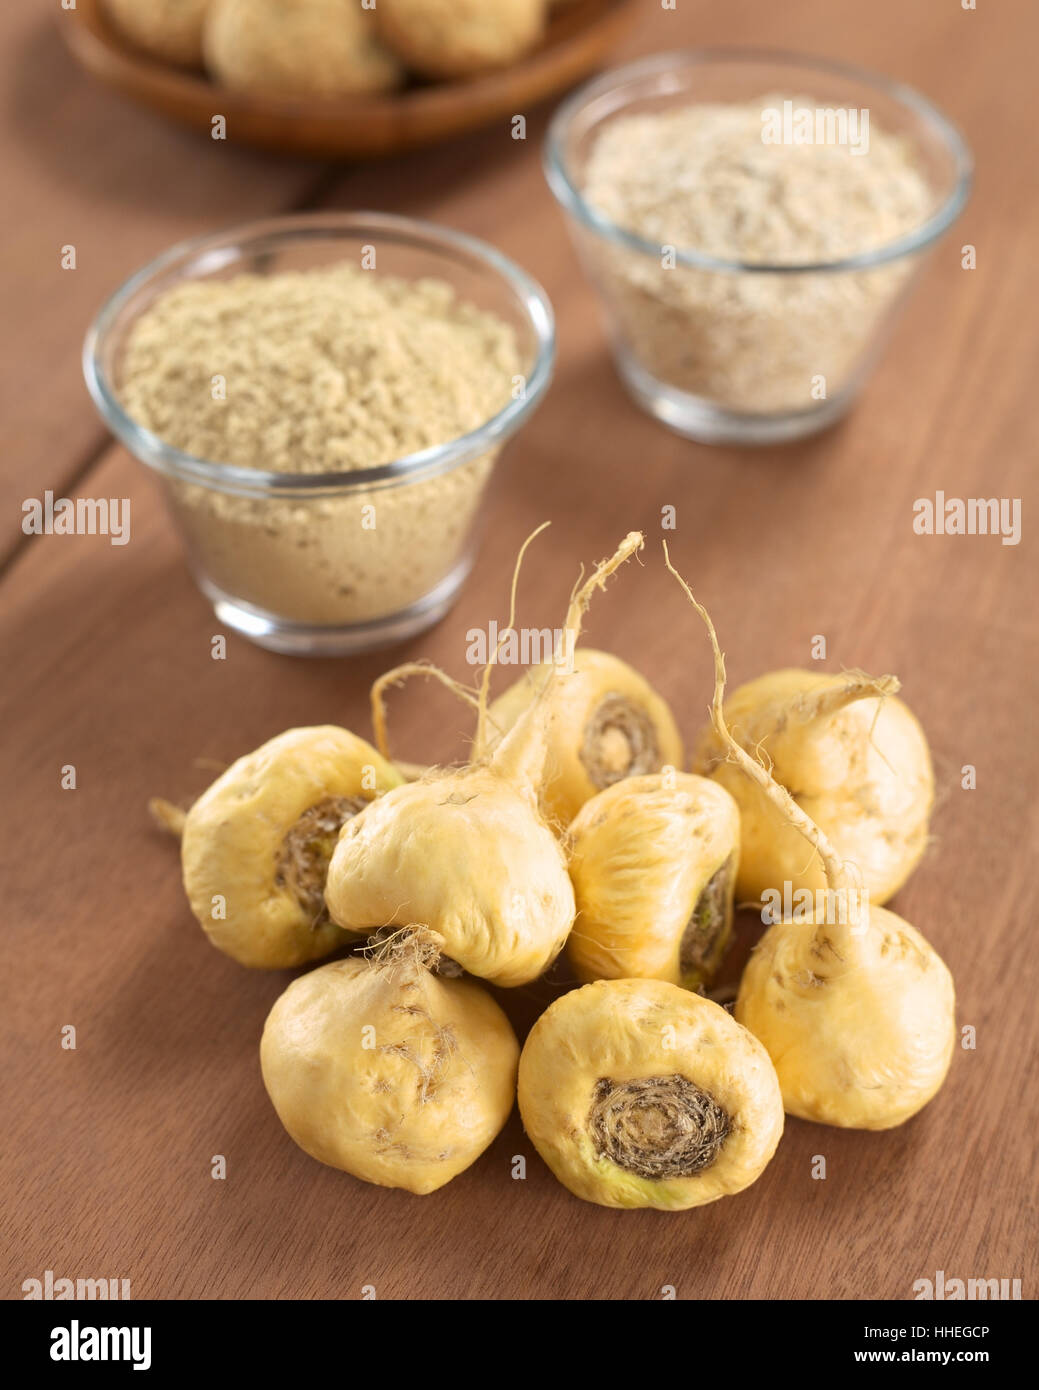 food, aliment, root, tuber, food, aliment, root, vegetable, tuber, raw, Stock Photo